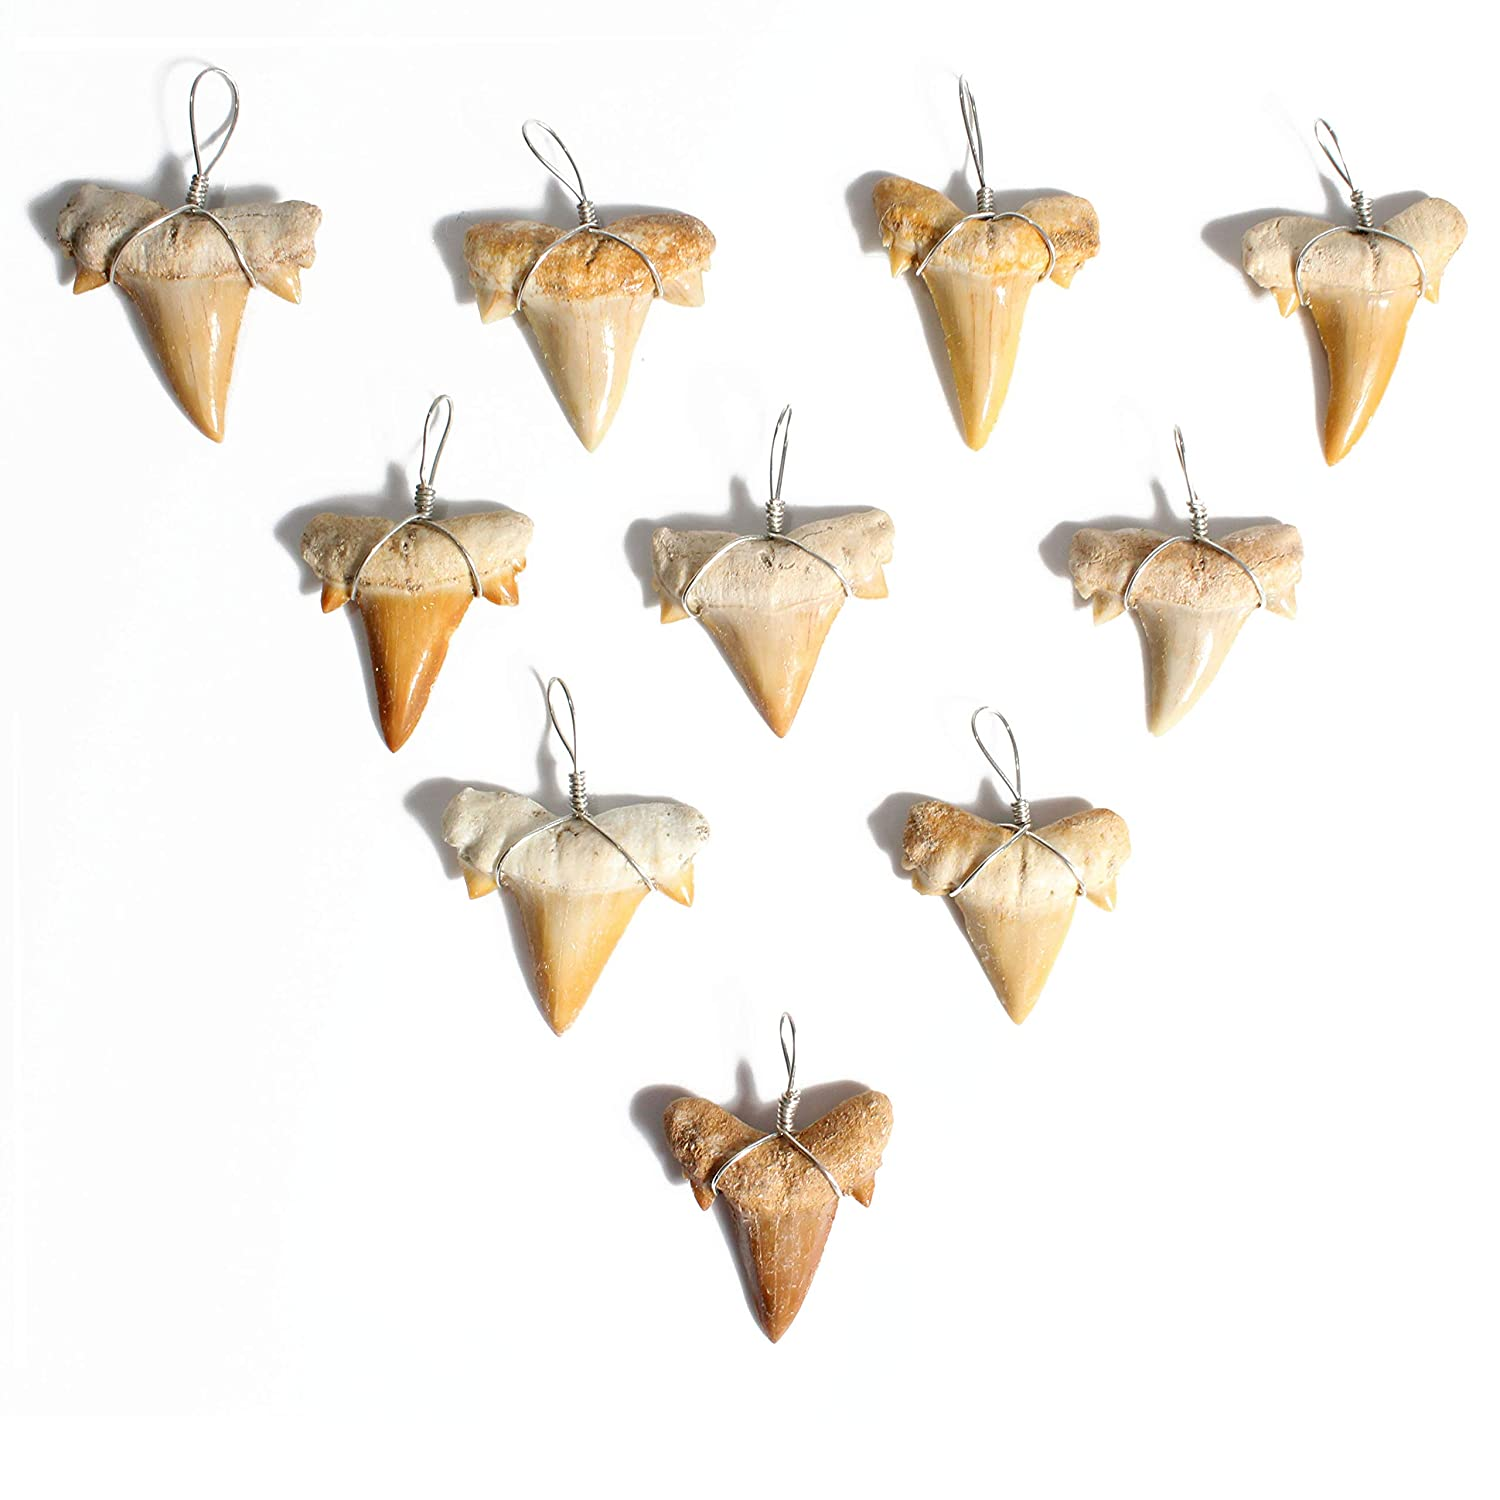 10 Wire Wrapped Fossilized Shark Teeth for Necklace - Shark Tooth Necklace Charm Pendant